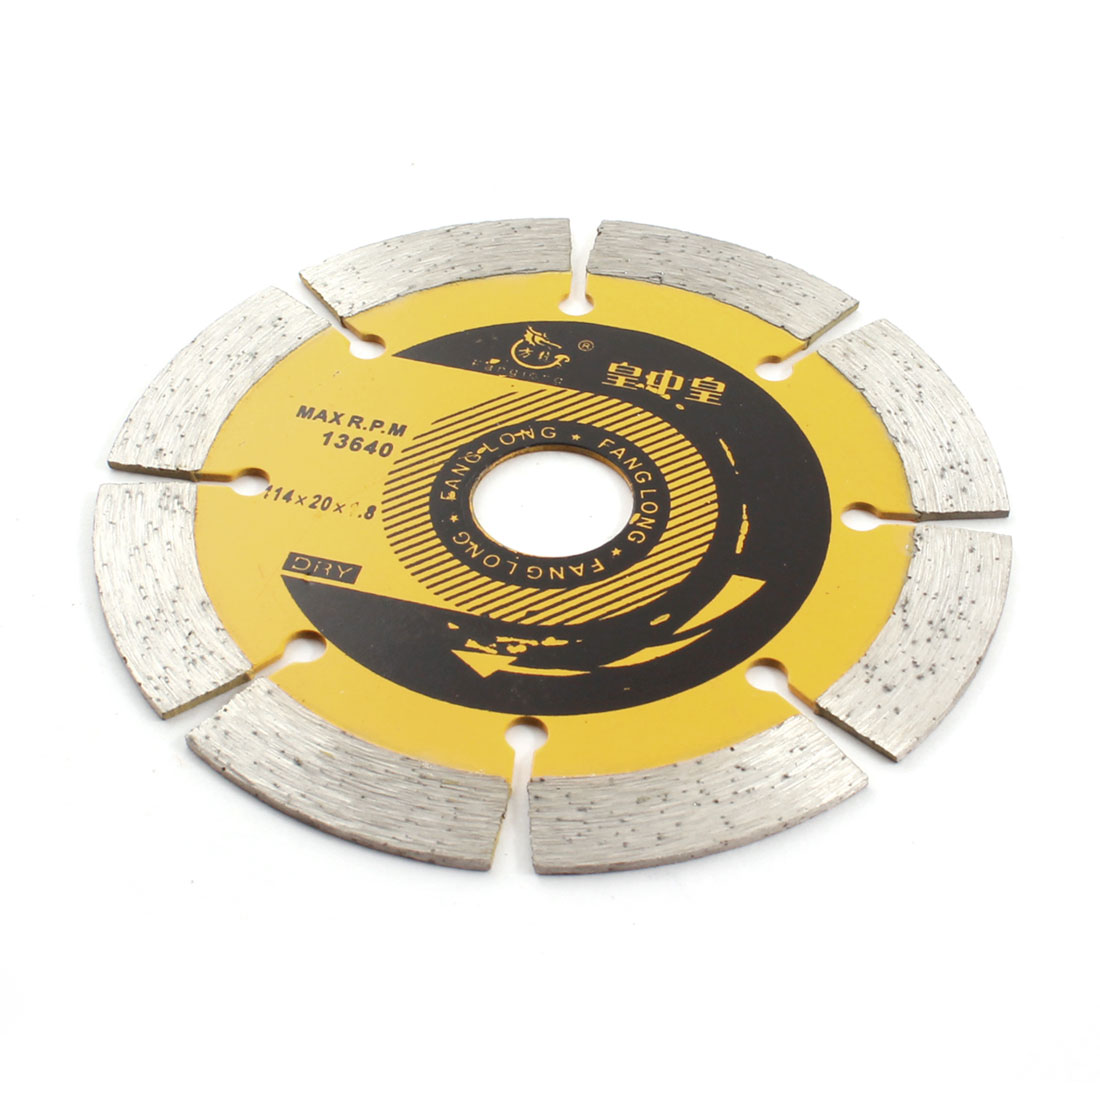 Masonry Ceramic Marble Cutting 114mm Dia Diamond Saw Cutter 13640RPM